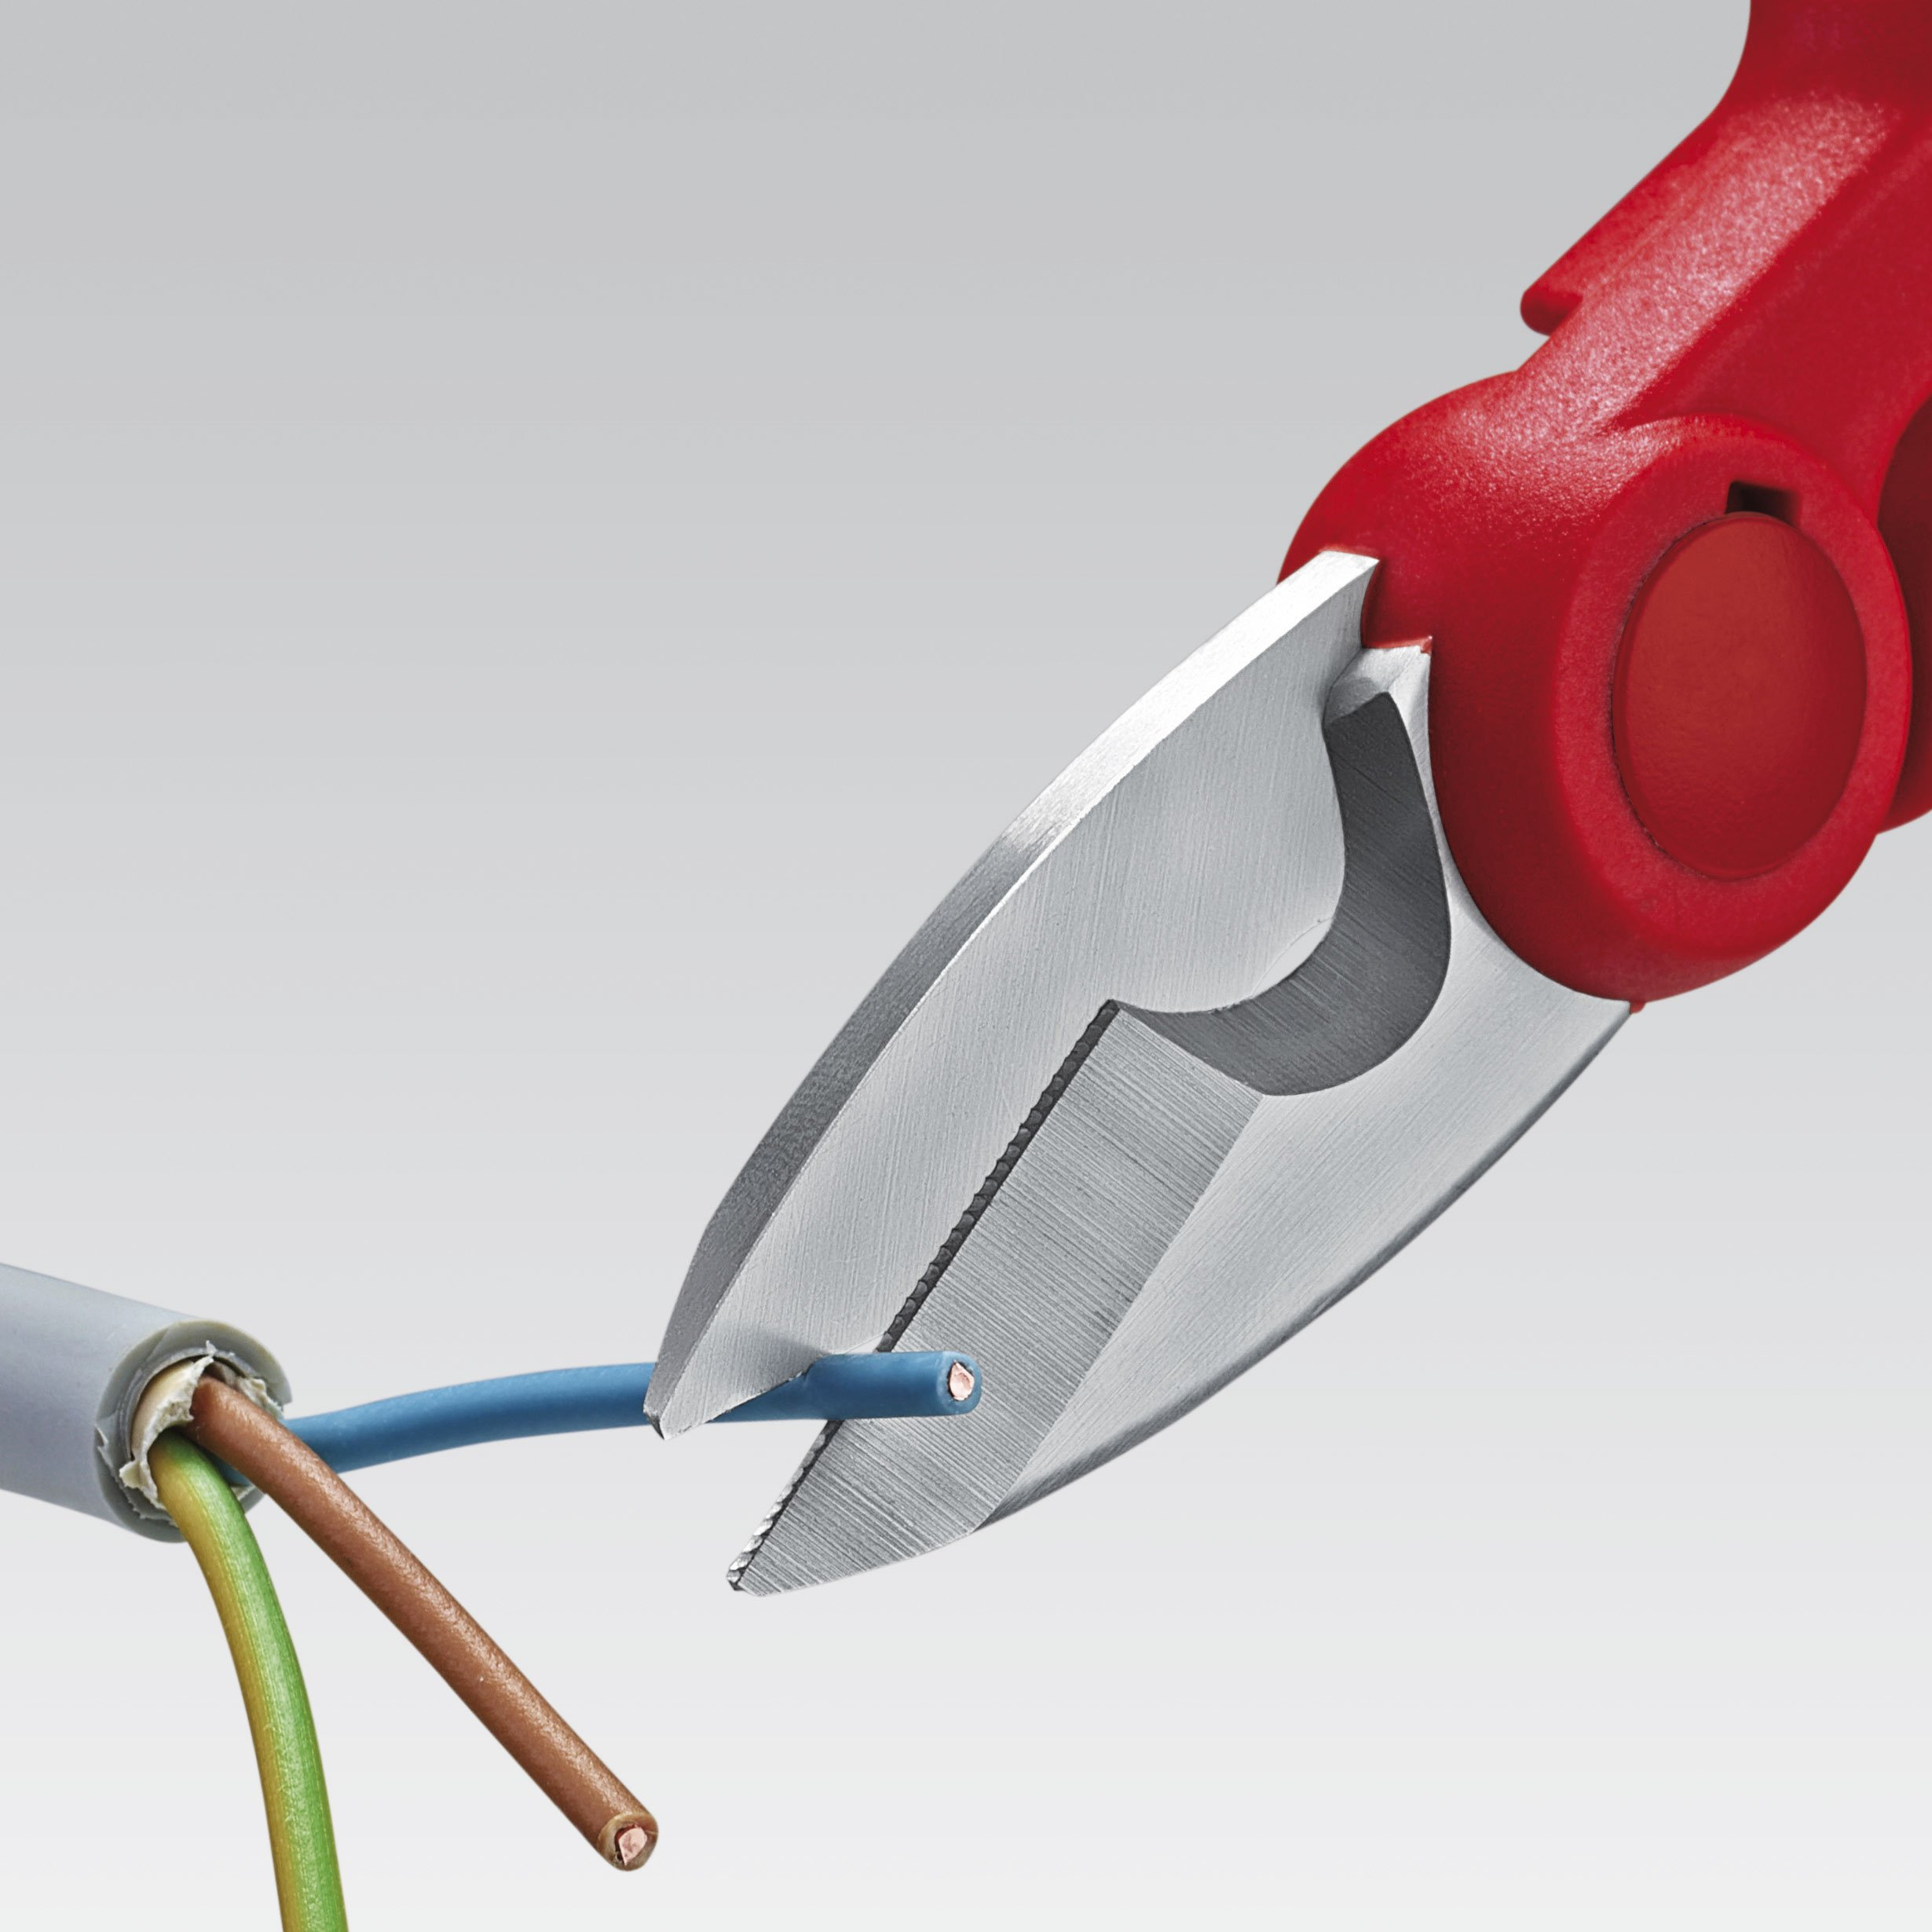 Knipex 95 05 155 SB Electrician's Shears 6,1''